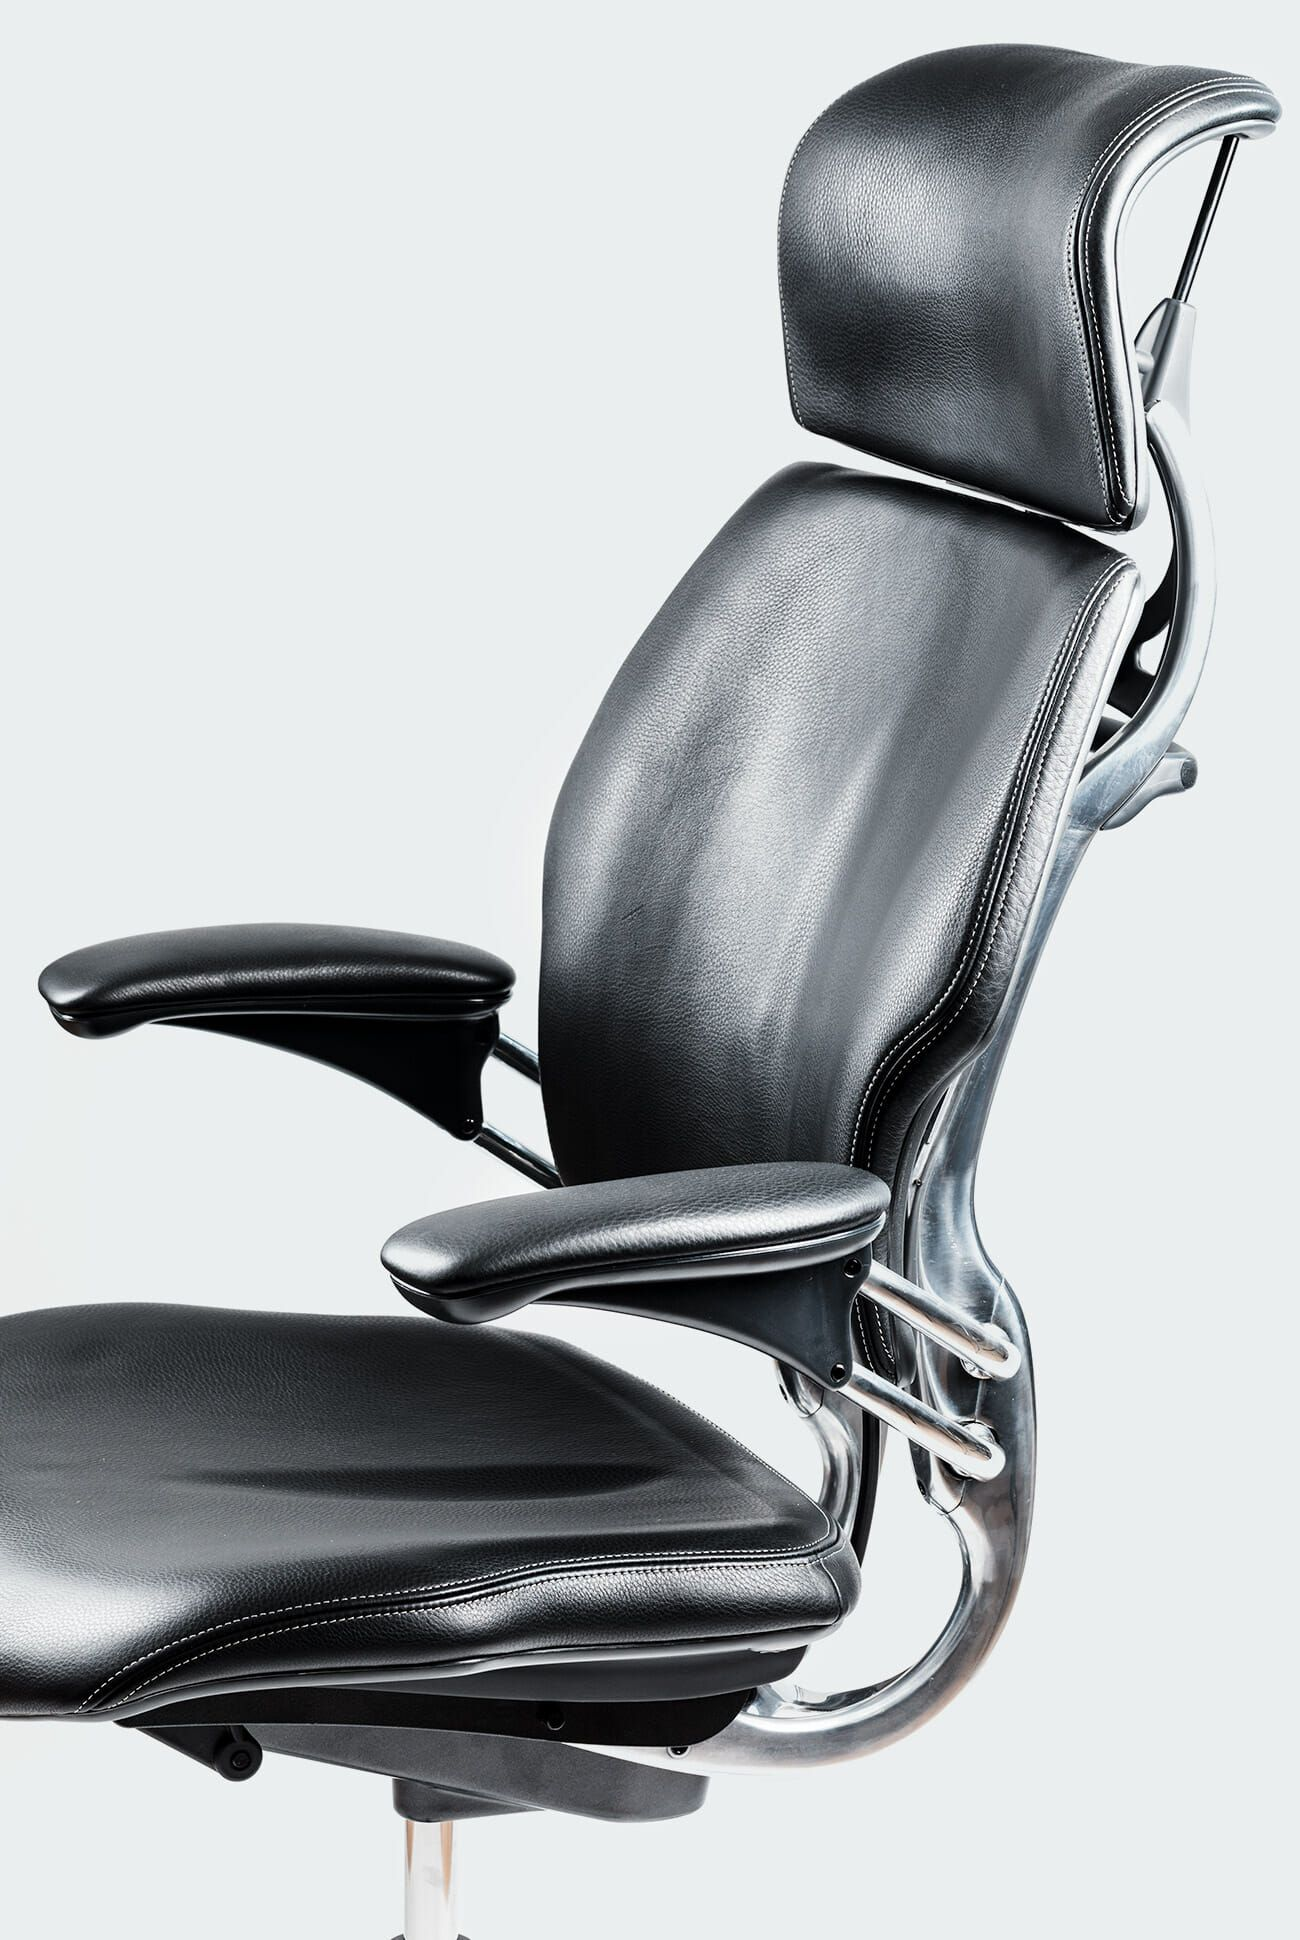 Marvelous The 14 Best Office Chairs Of 2019 Gear Patrol Pabps2019 Chair Design Images Pabps2019Com